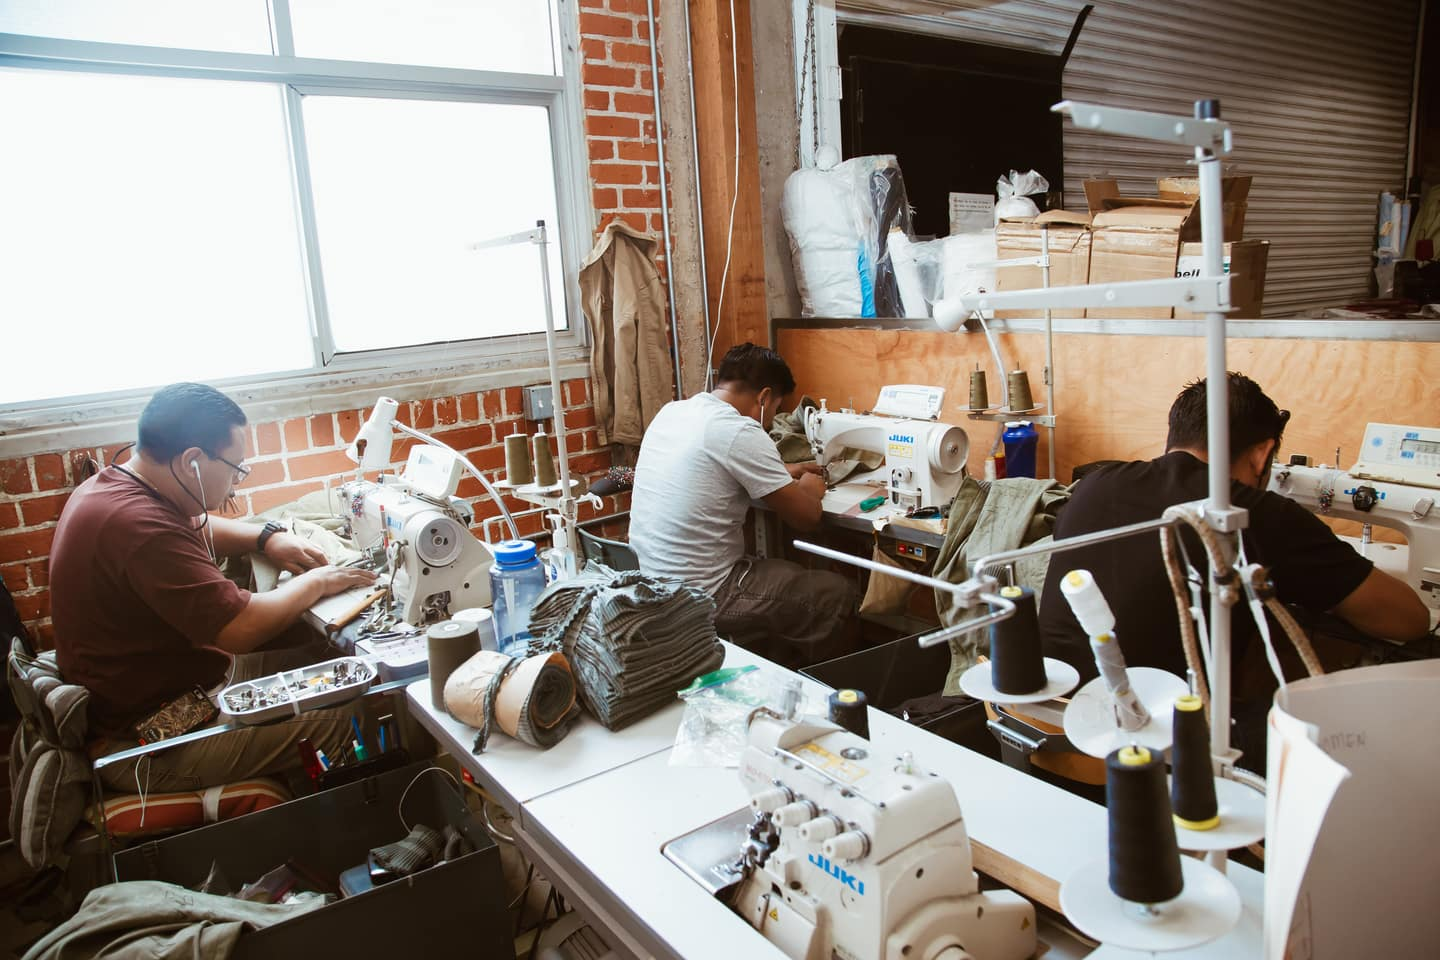 Three People Working in Clothing Manufacturing Office